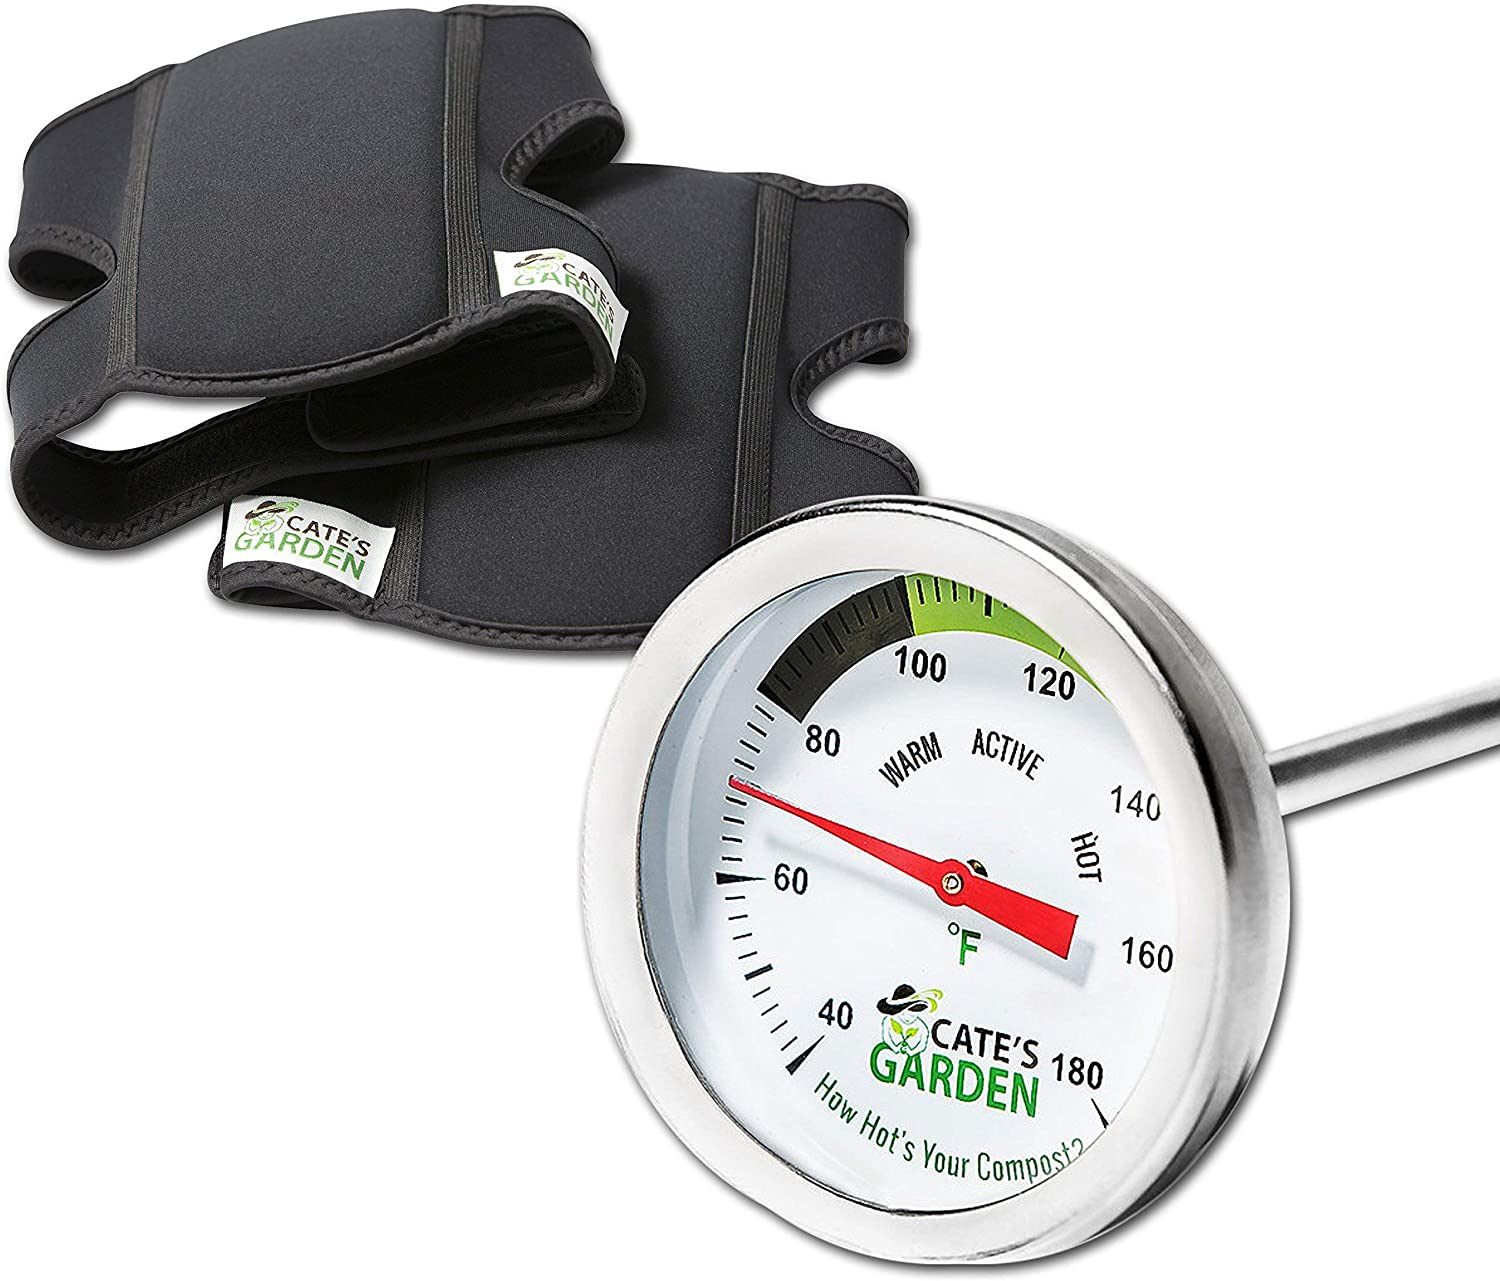 Compost Thermometer Premium Stainless Steel Bimetal Thermometer for Backyard Composting & Cate's Garden Ultra Comfort Knee Pads for The Home Gardener – Neoprene, Soft, Water-Resistant Construction